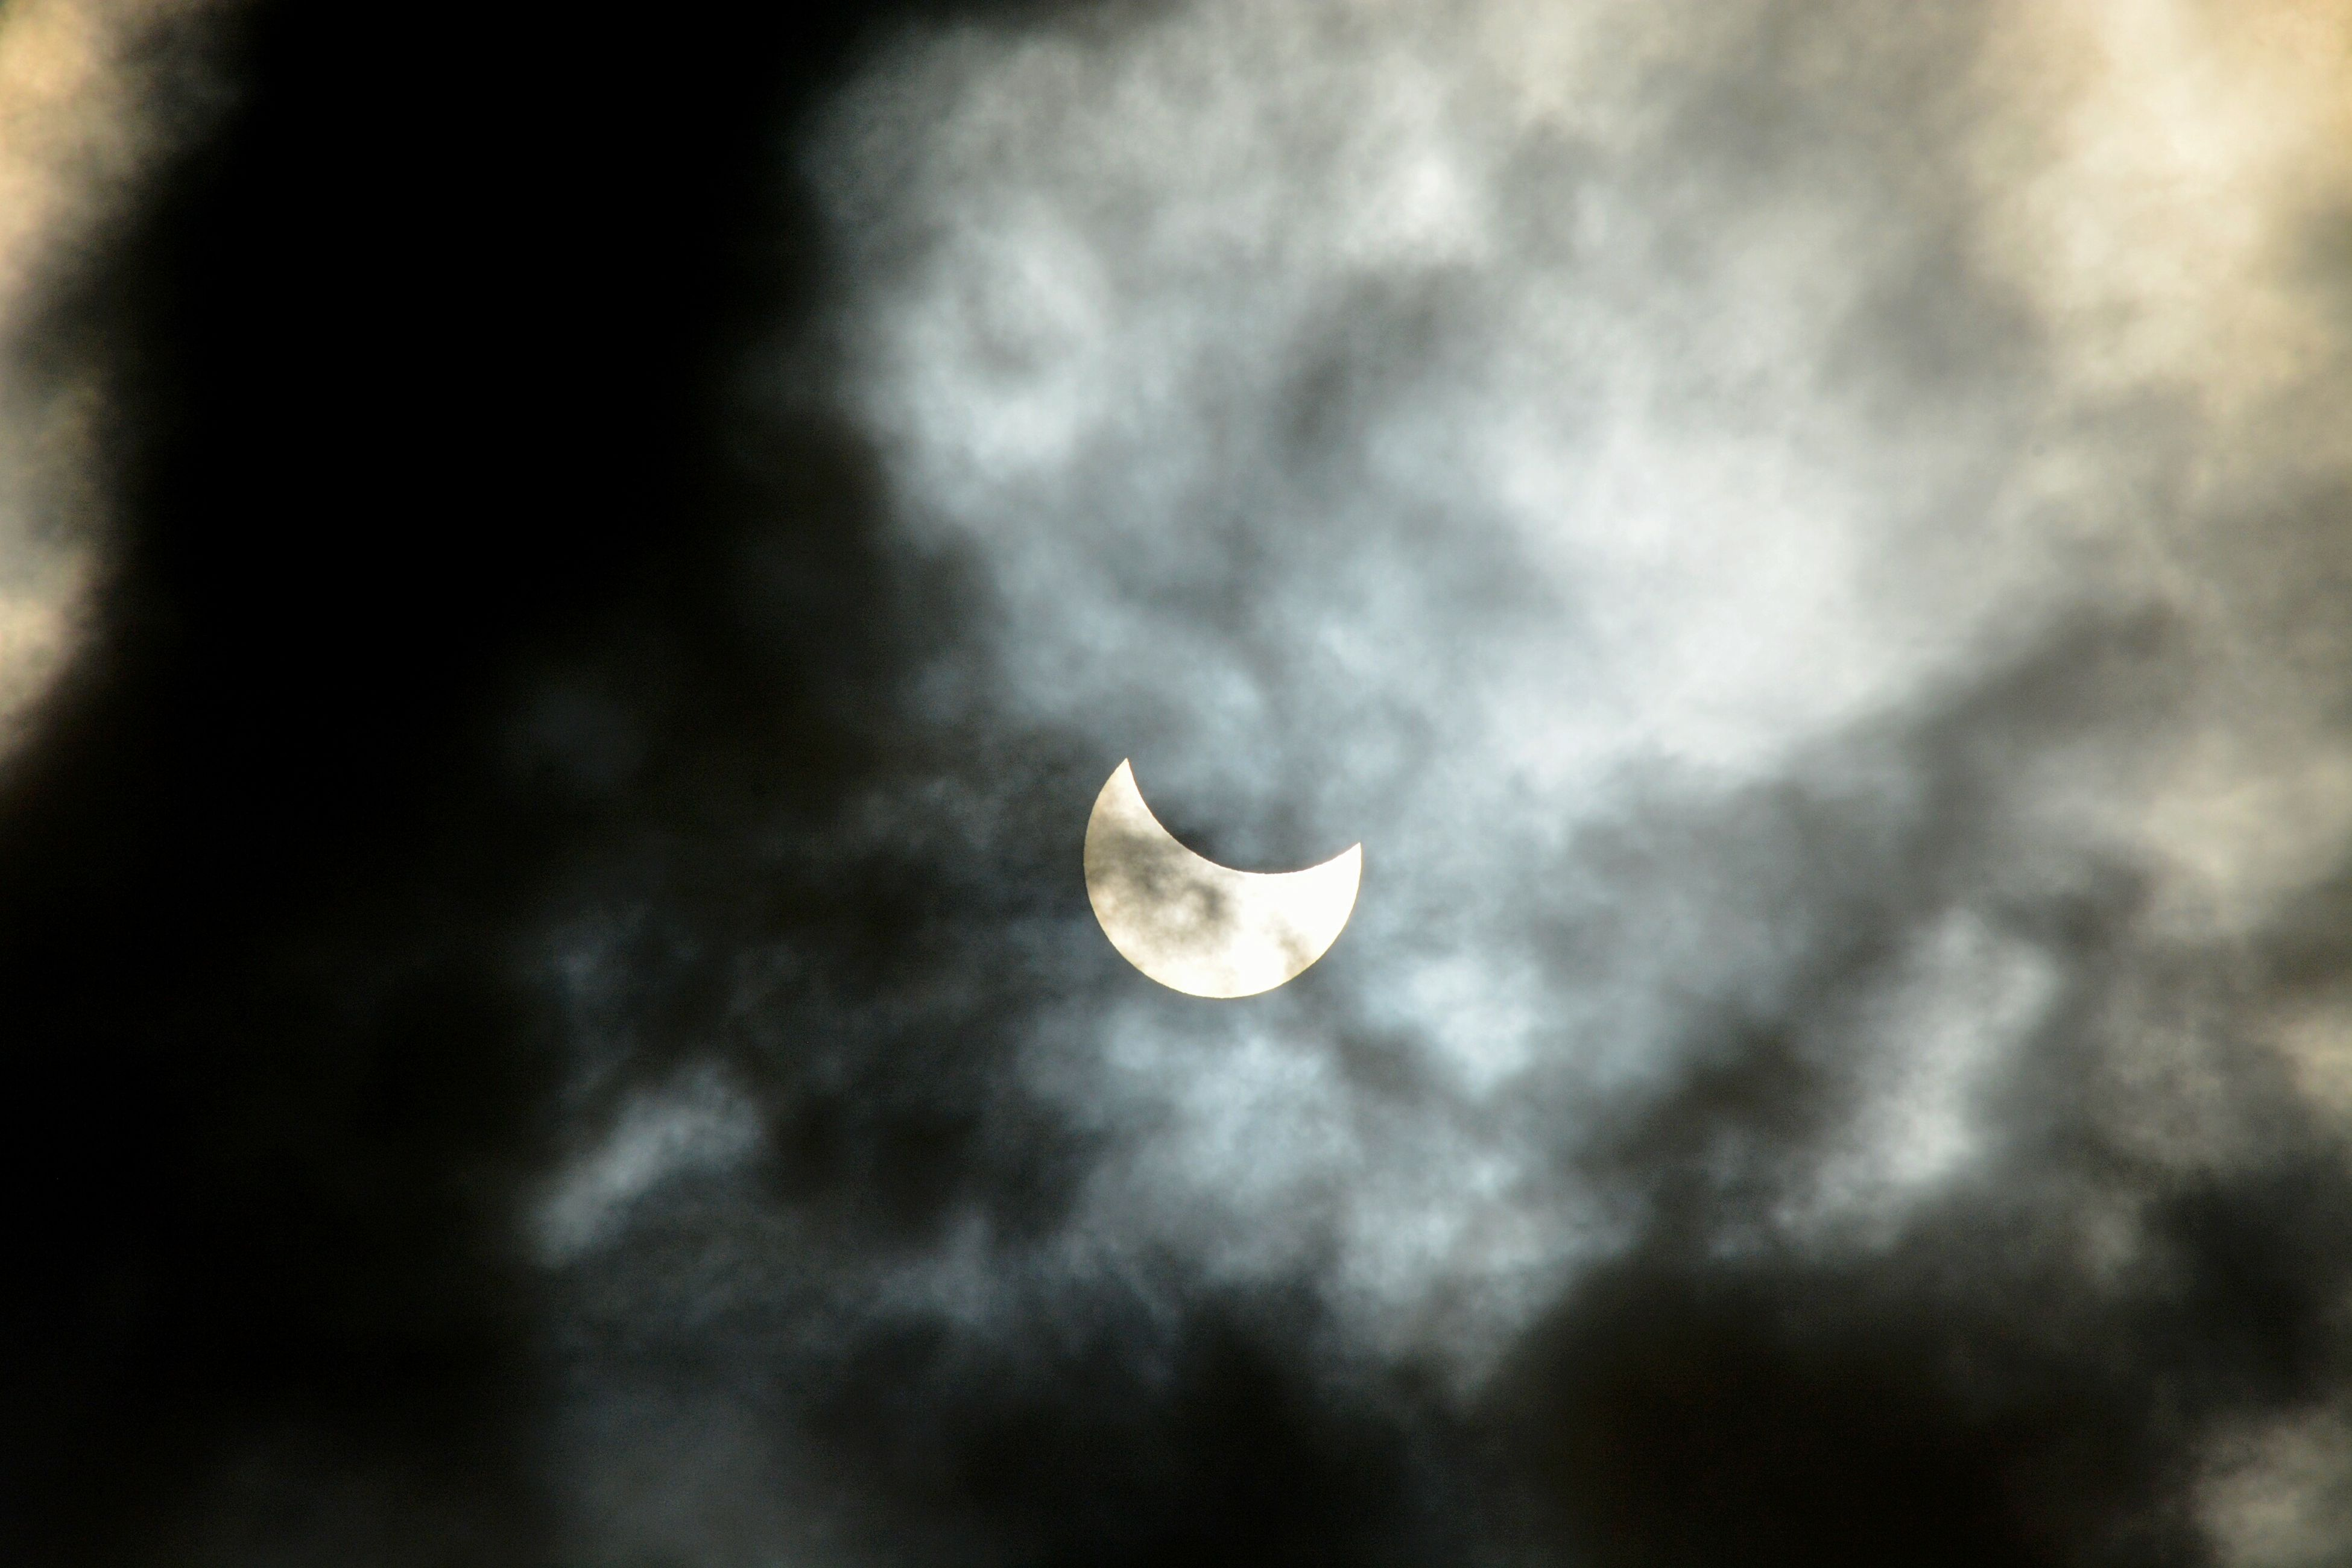 beauty in nature, nature, no people, outdoors, moon, cloud - sky, tranquil scene, close-up, sky, fragility, day, animal themes